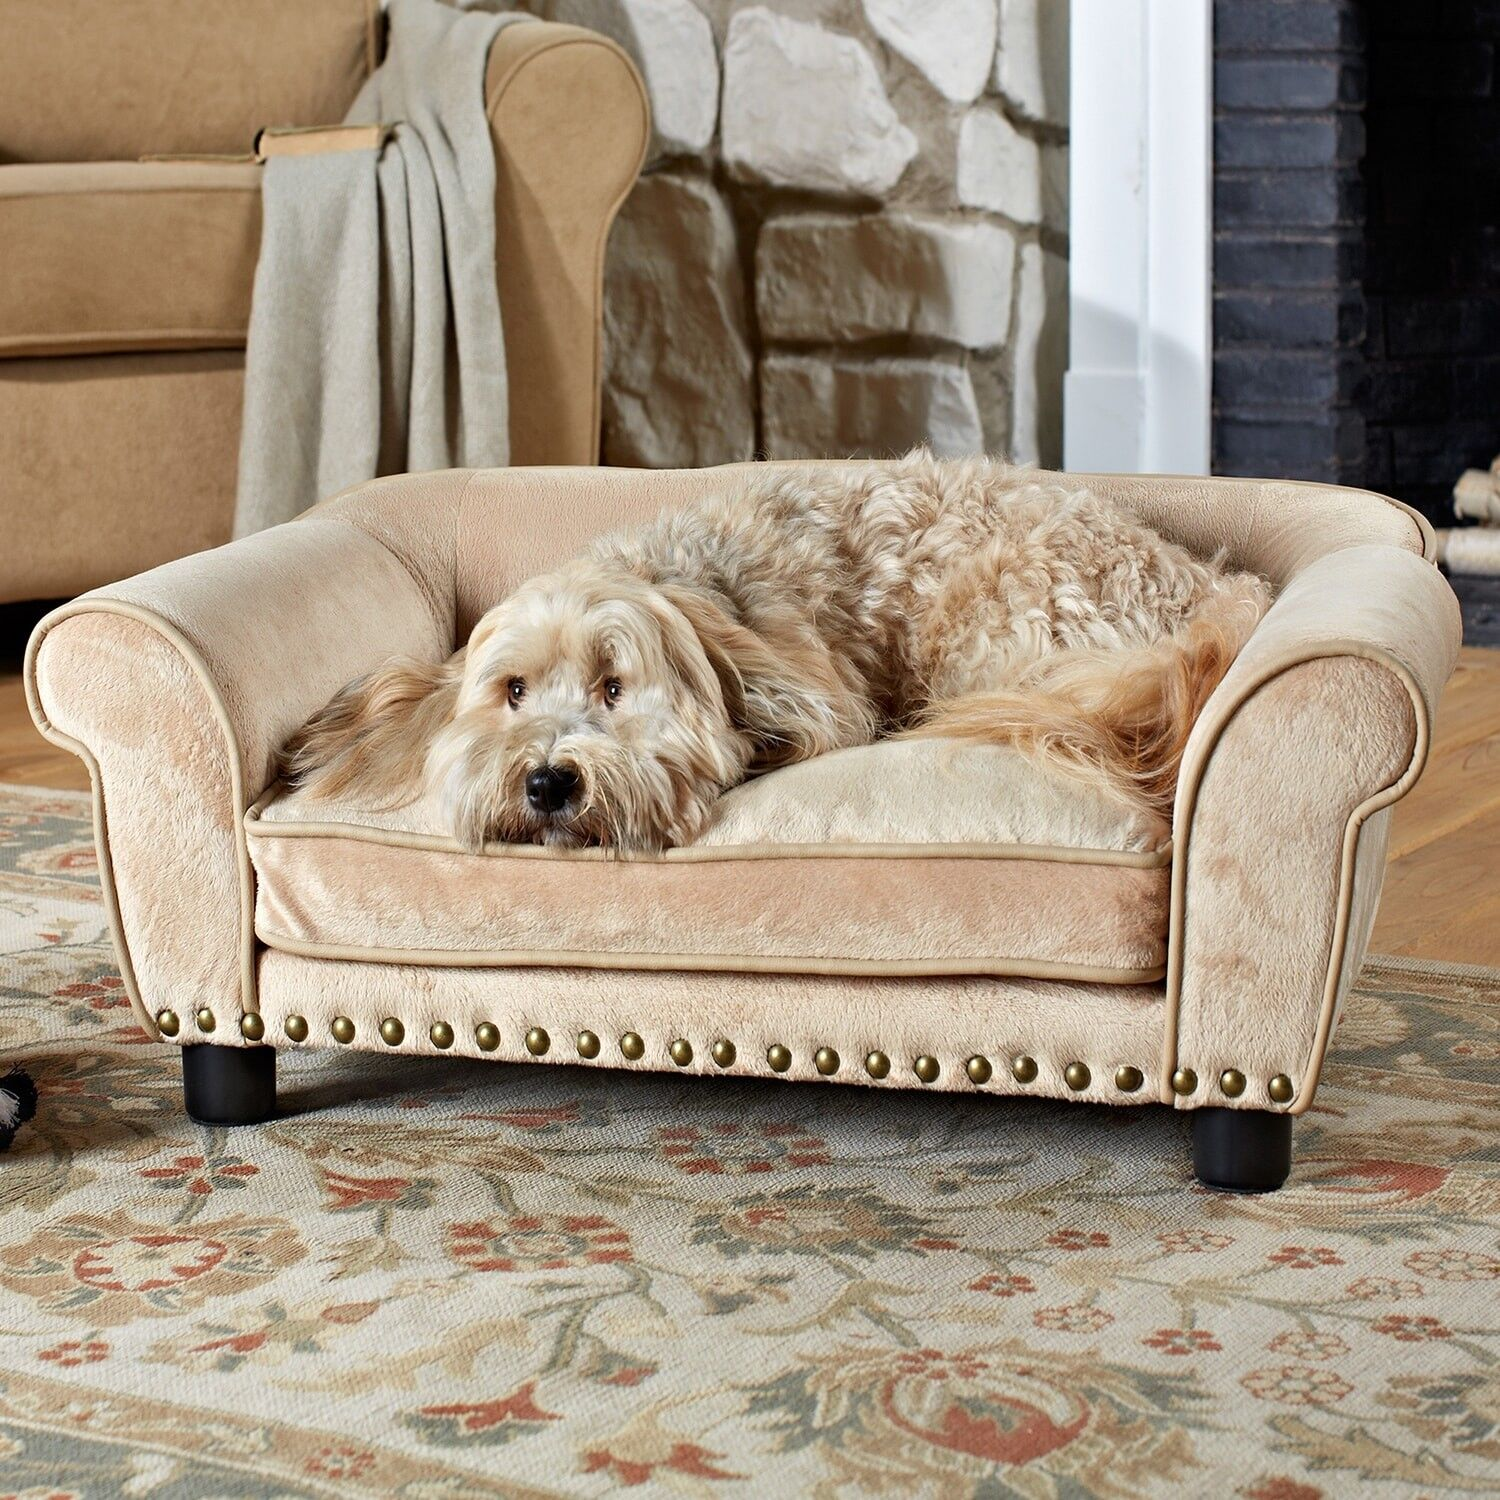 Dog Bed Sofa Elevated Couch Cat Pet